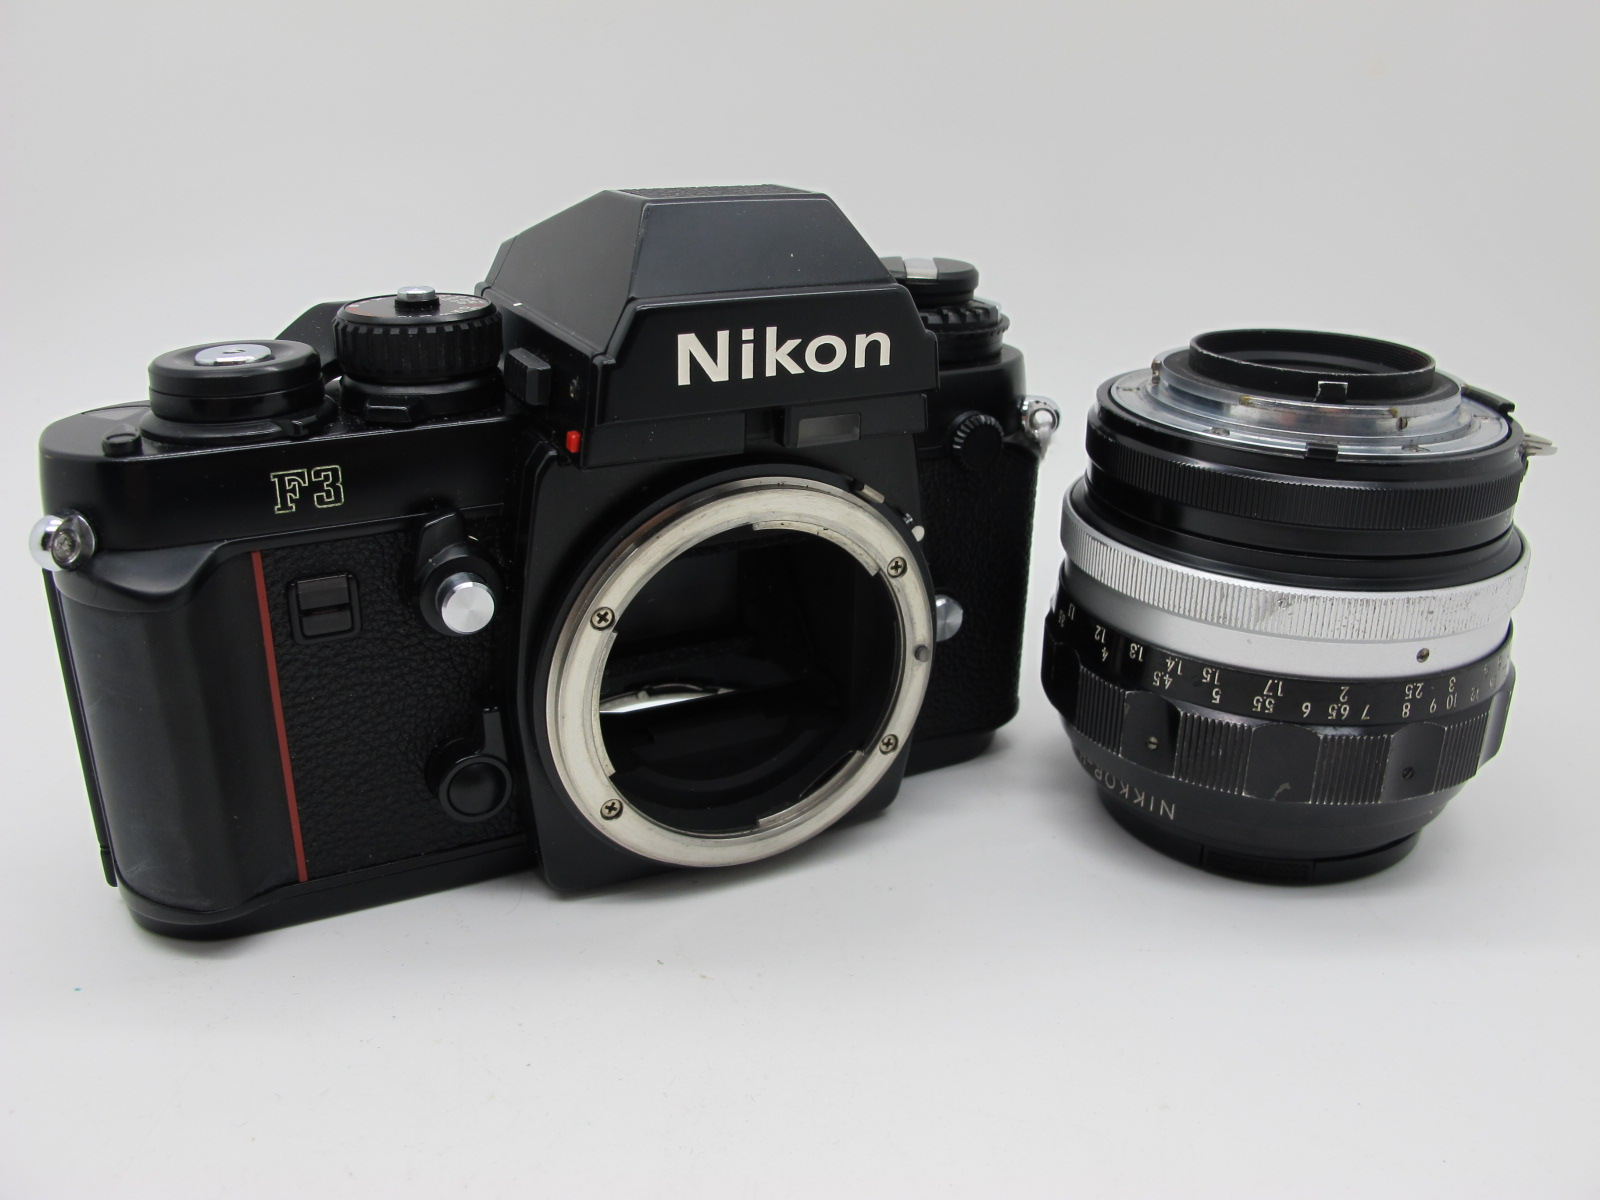 Nikon F3, with Nikkor-H Auto 1-18 f=85mm lens. - Image 9 of 9